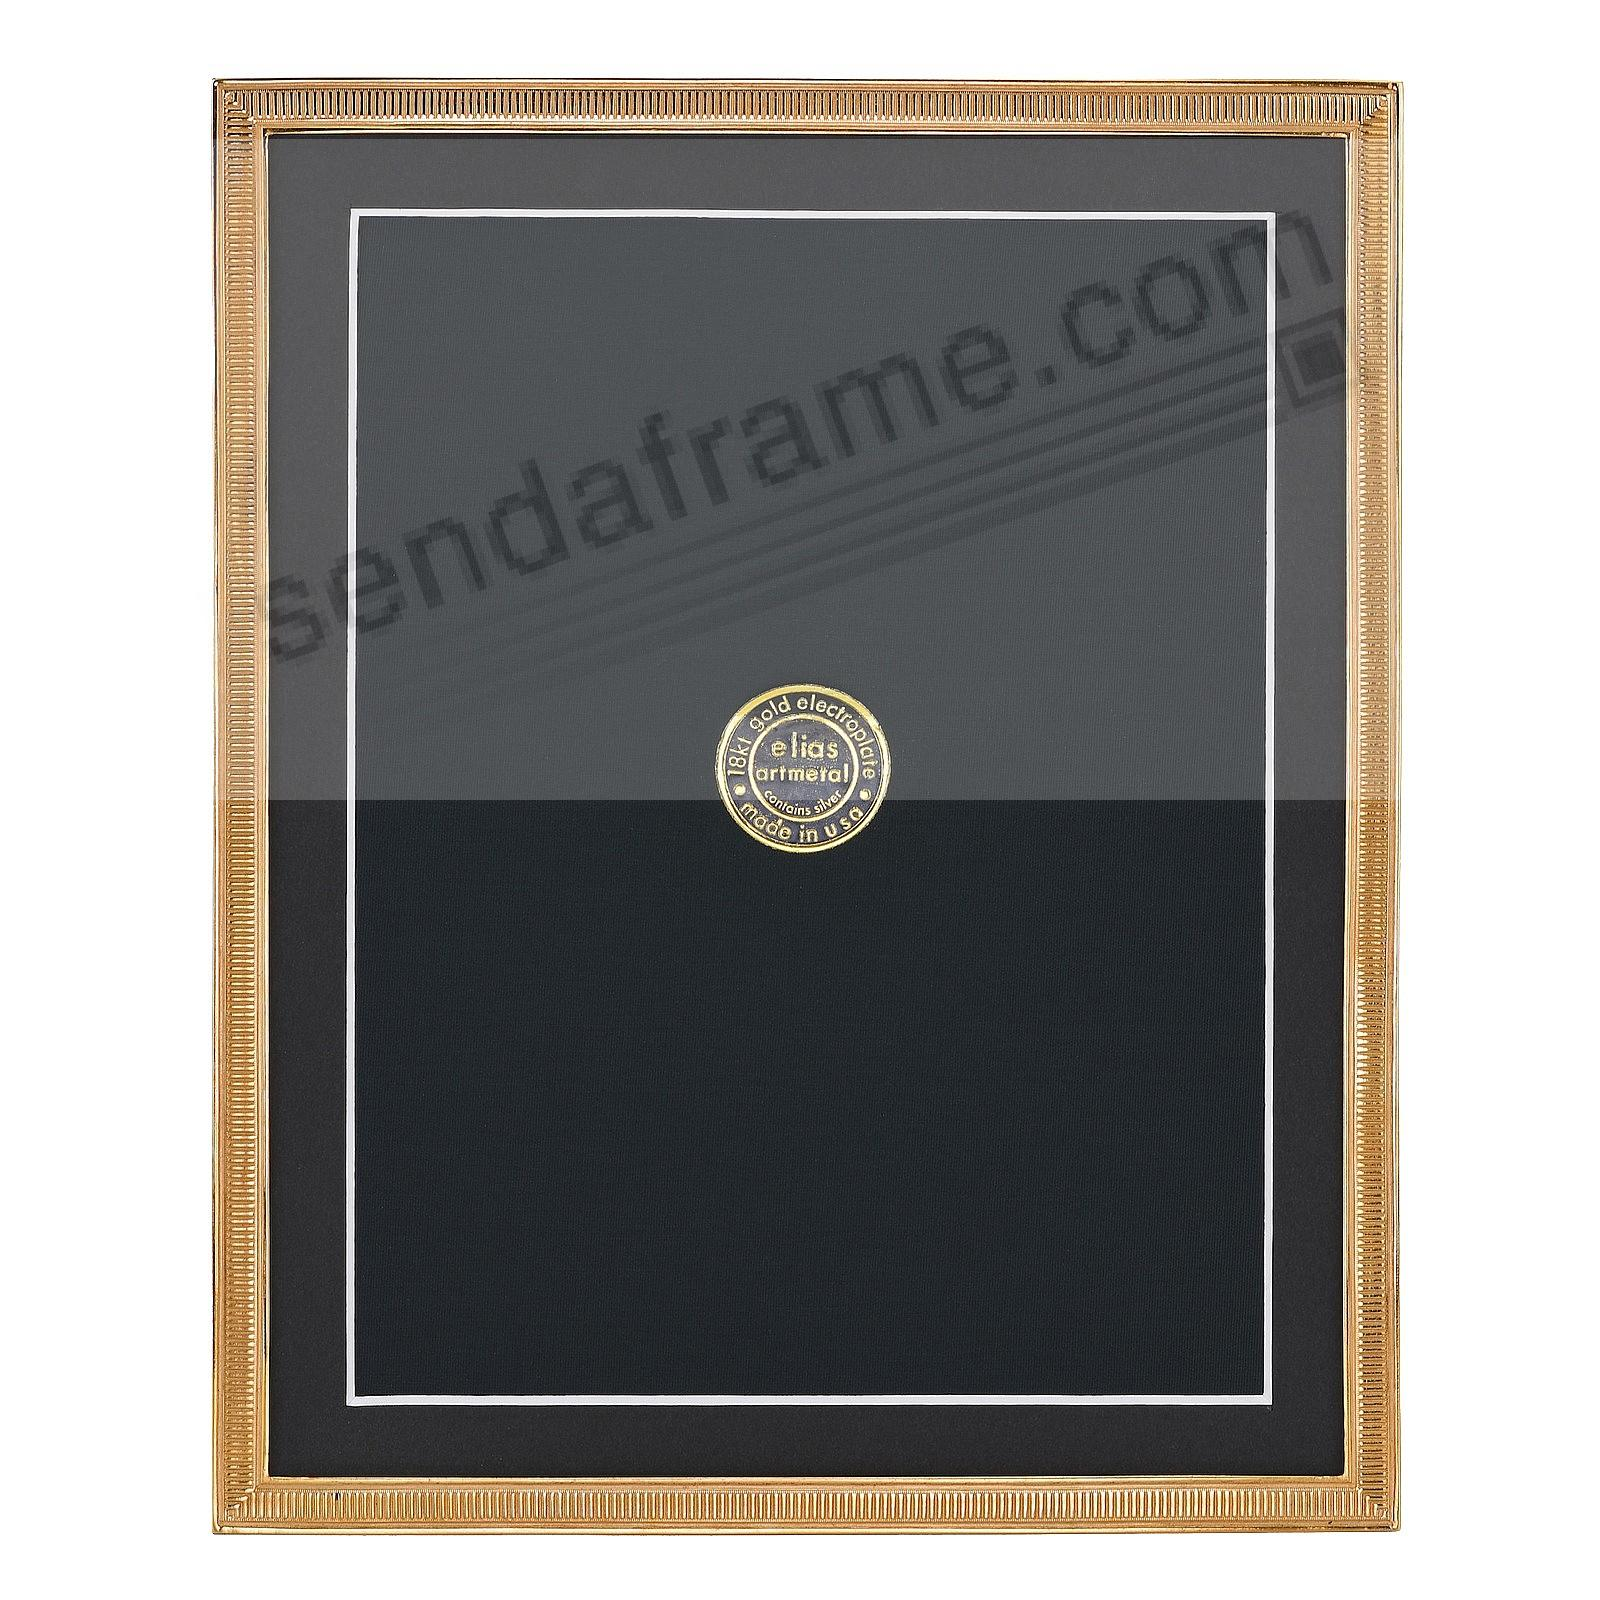 LINE BY LINE 18kt Museum Gold over Fine Pewter frame 8x10/7x9 by Elias Artmetal®